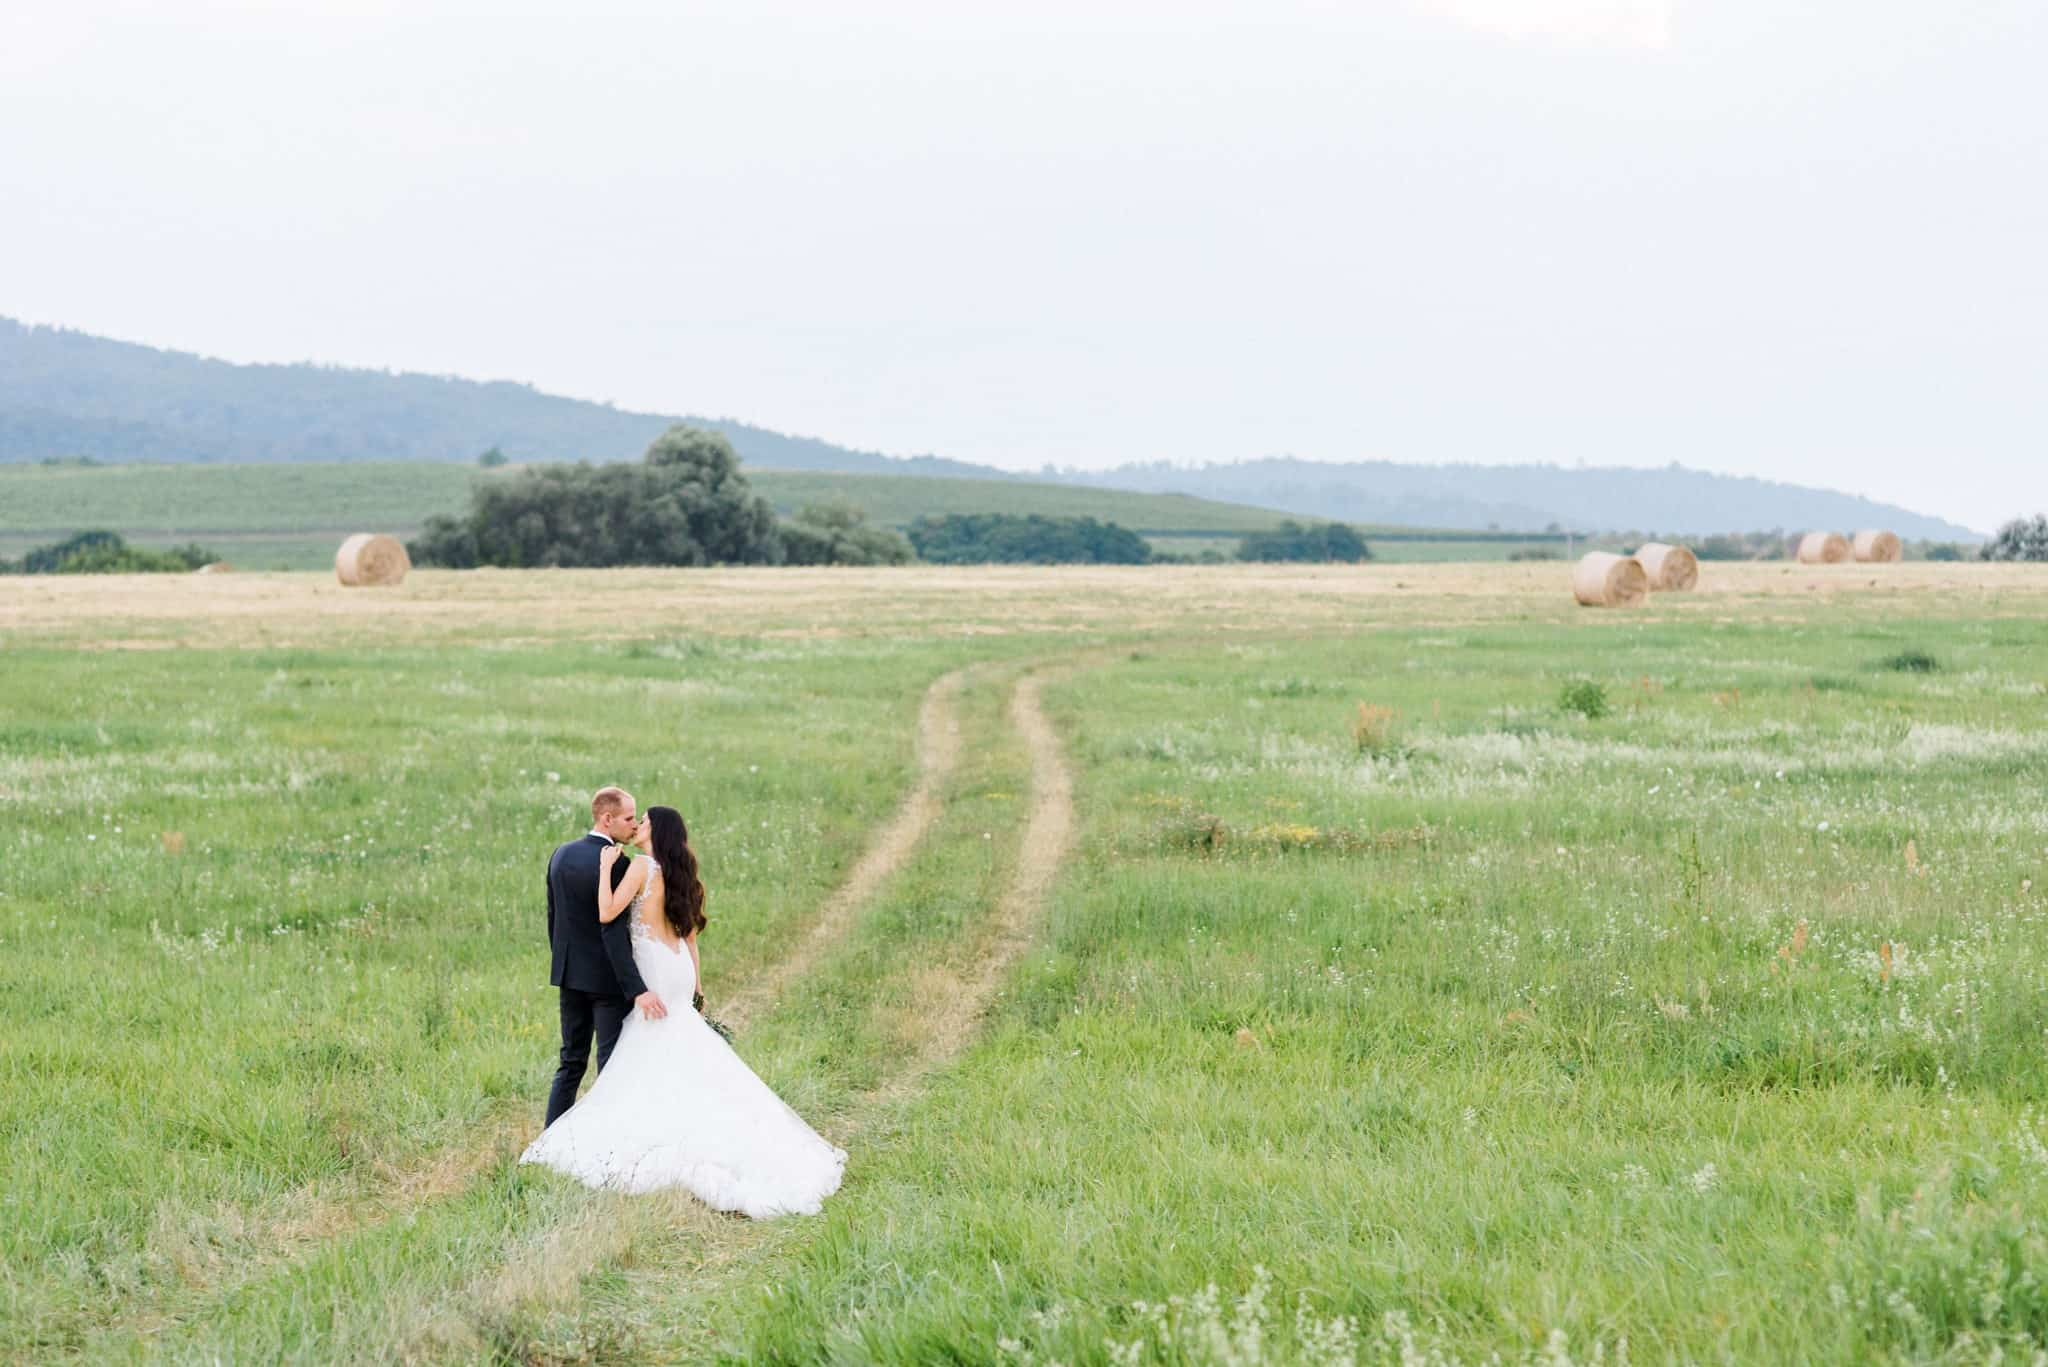 Wedoverhills_Prewedding_Hungary_Wedding_Photographer_0037